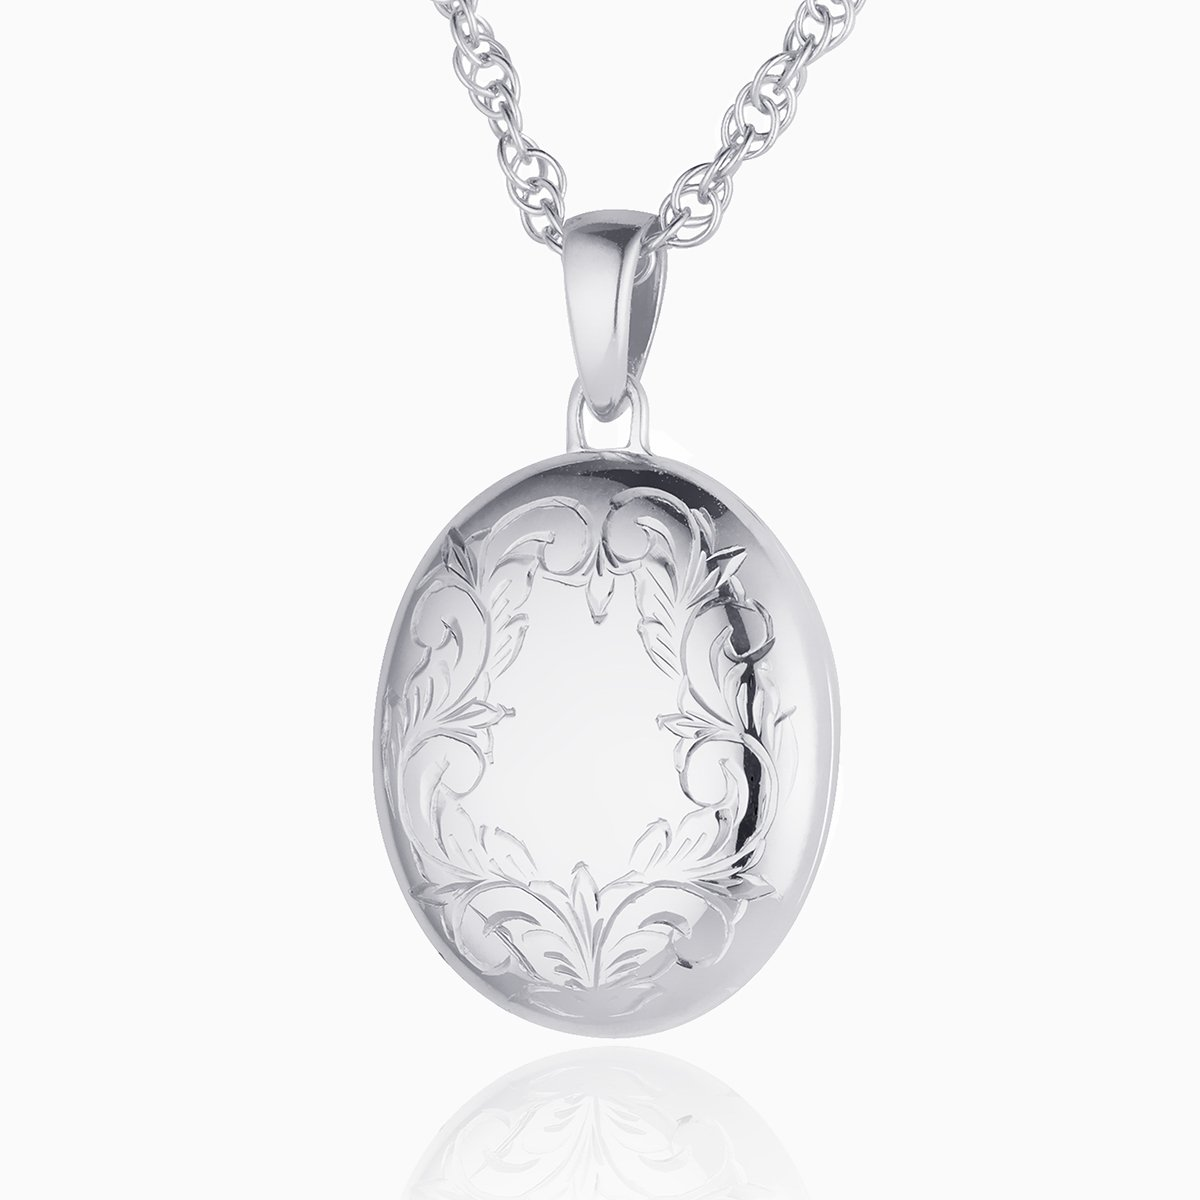 Product title: Hand Engraved White Gold Oval Border Locket, product type: Locket